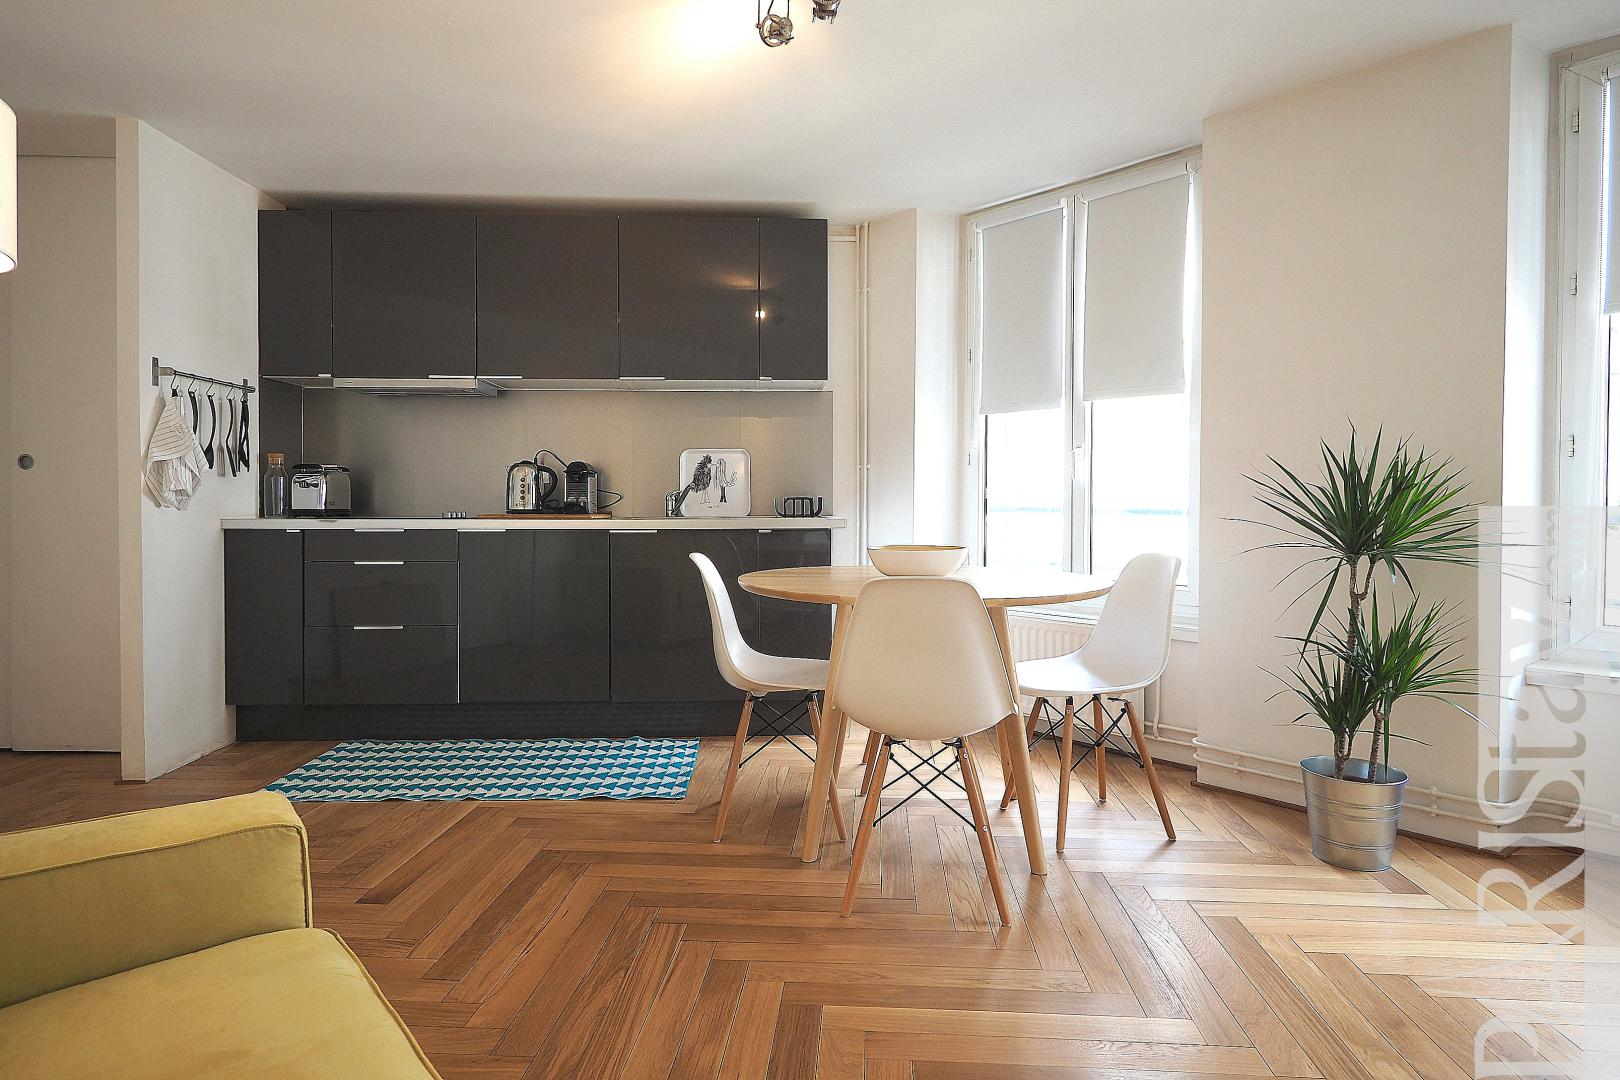 Apartment rental in paris france furnished one bedroom ...